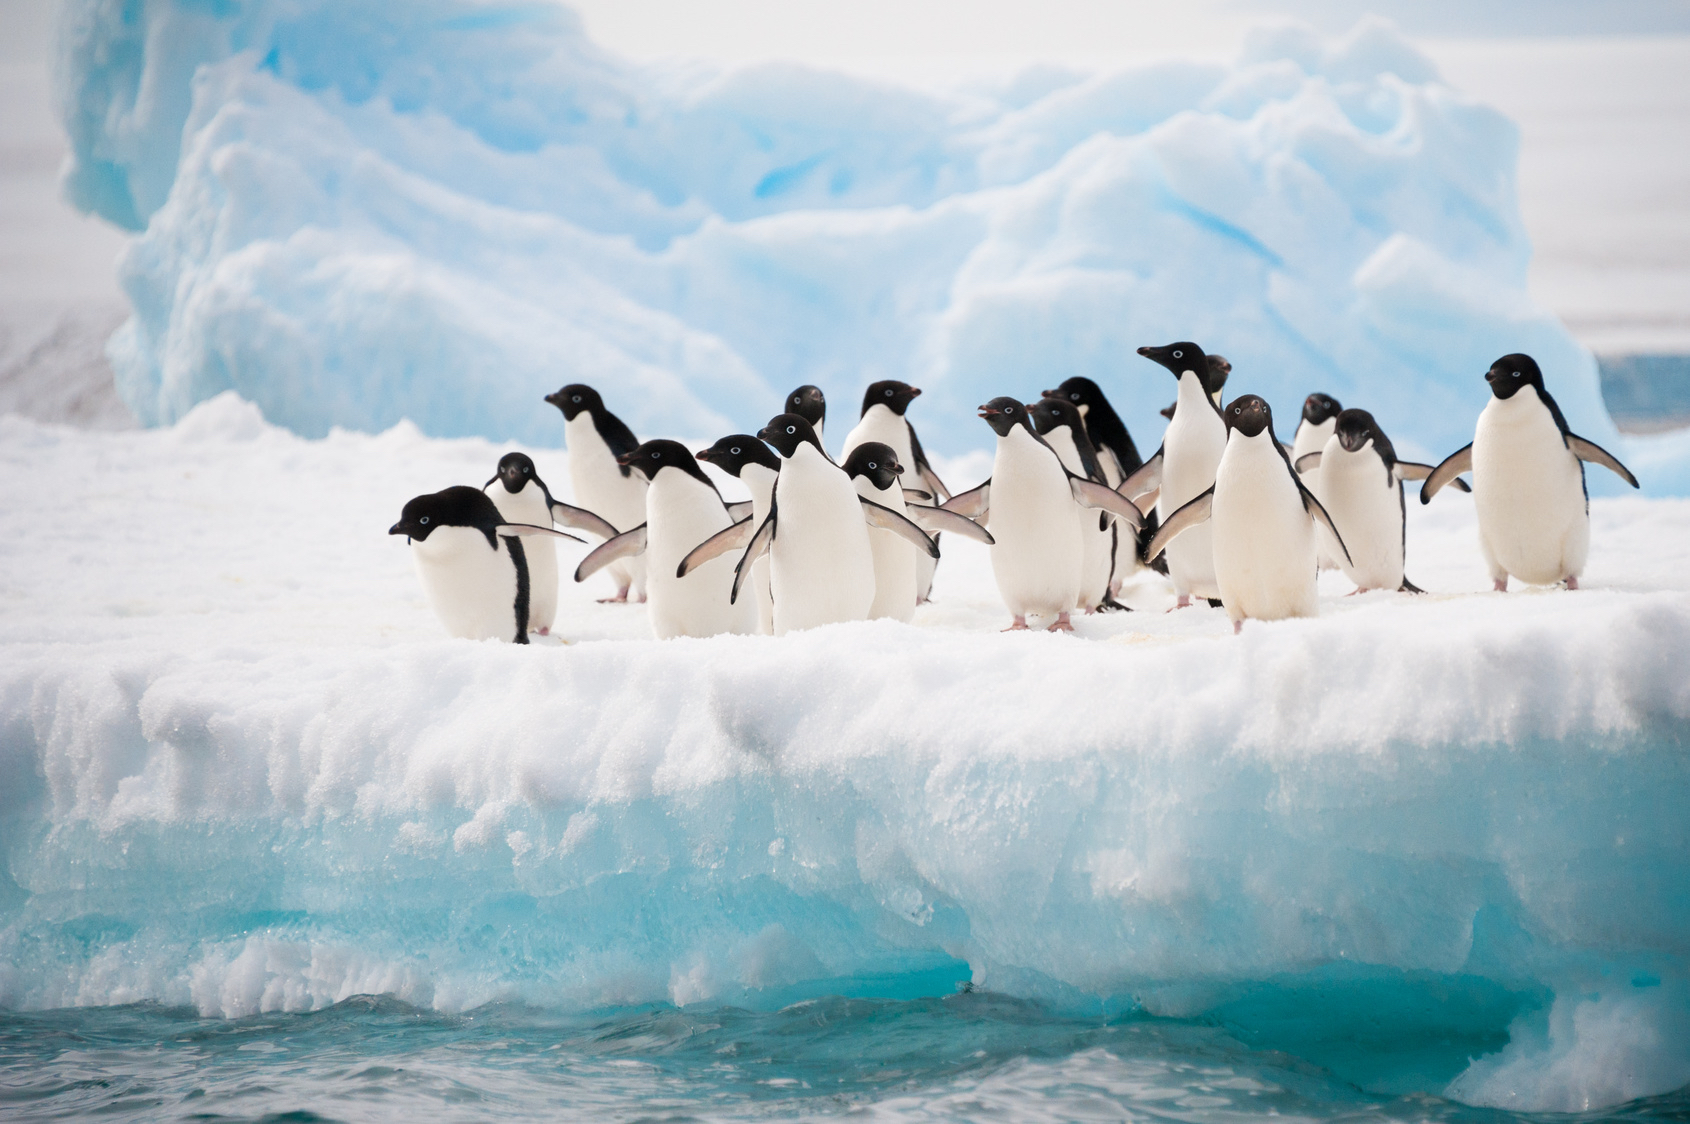 Penguins, Antarctica, cold climate trend